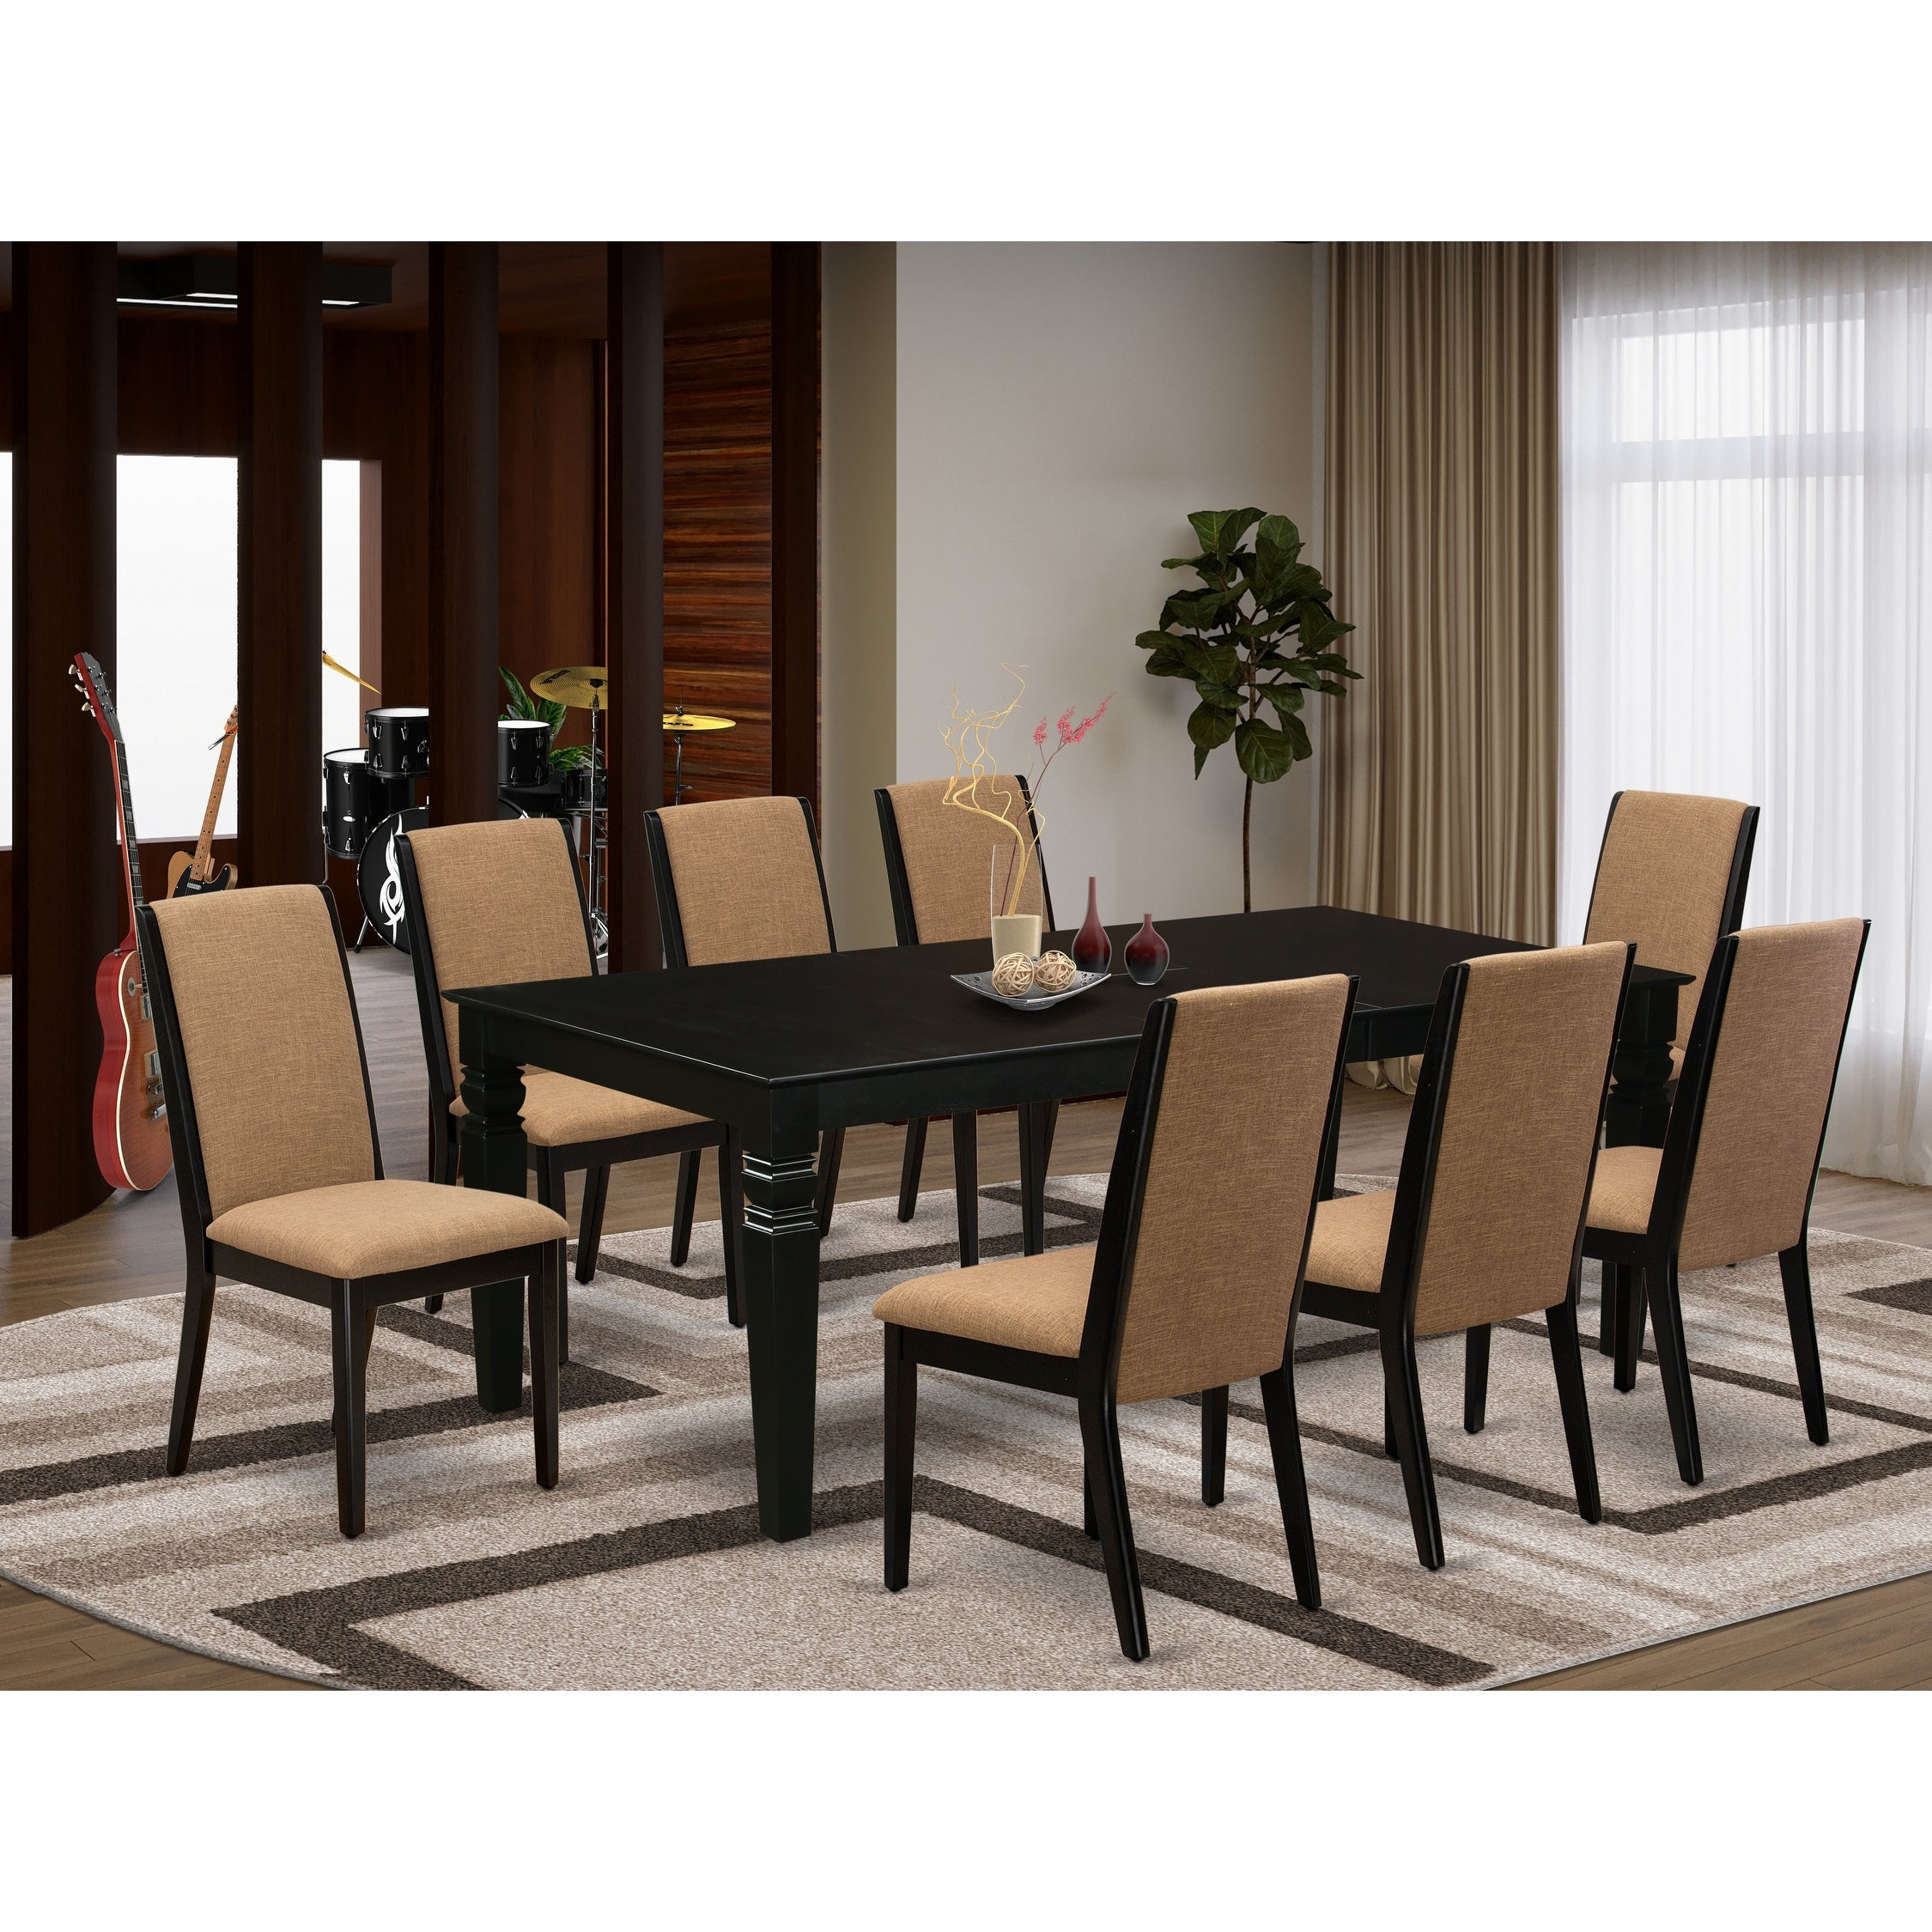 Picture of: Lgla9 Blk 47 9 Piece Kitchen Table Set 8 Person Dining Chairs And Butterfly Leaf Table High Back Black Finish Overstock 32085582 Grey